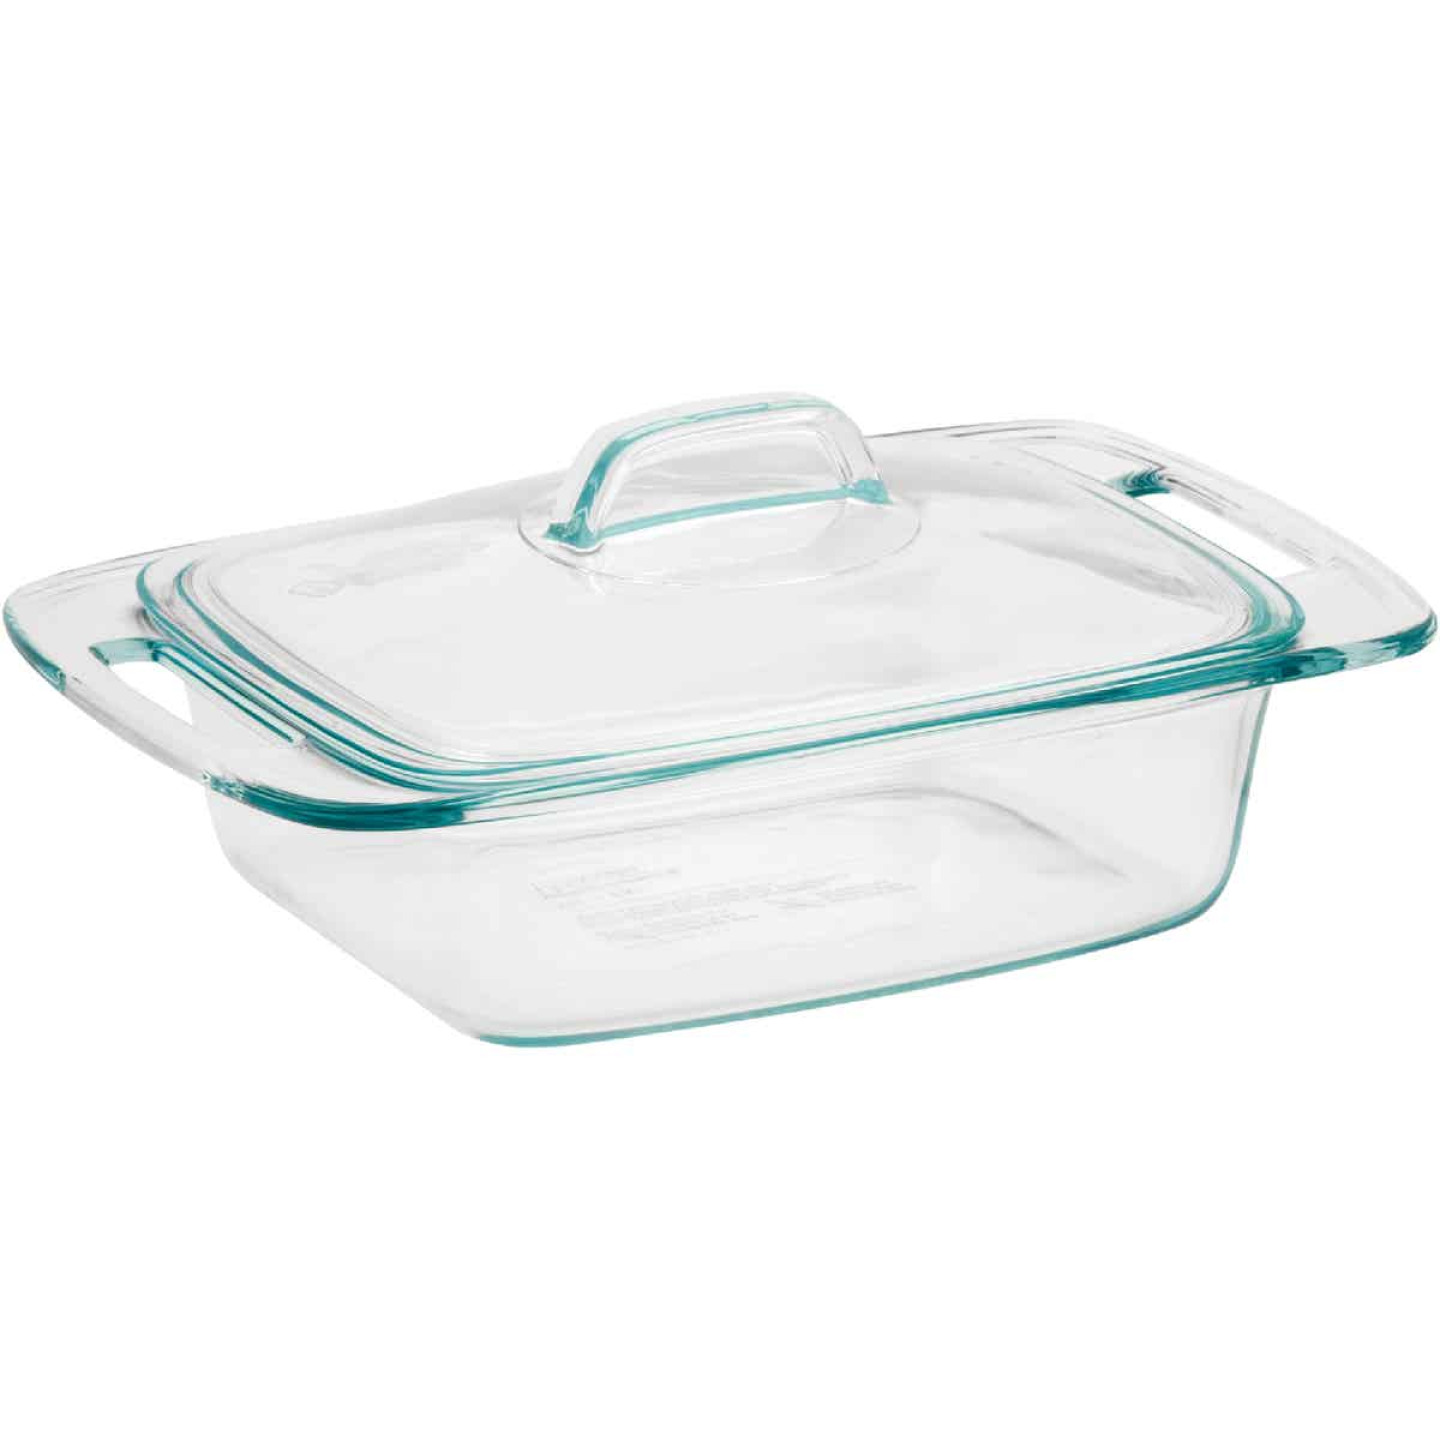 Pyrex Easy Grab 2 Quart Casserole Dish with Glass Cover Image 1